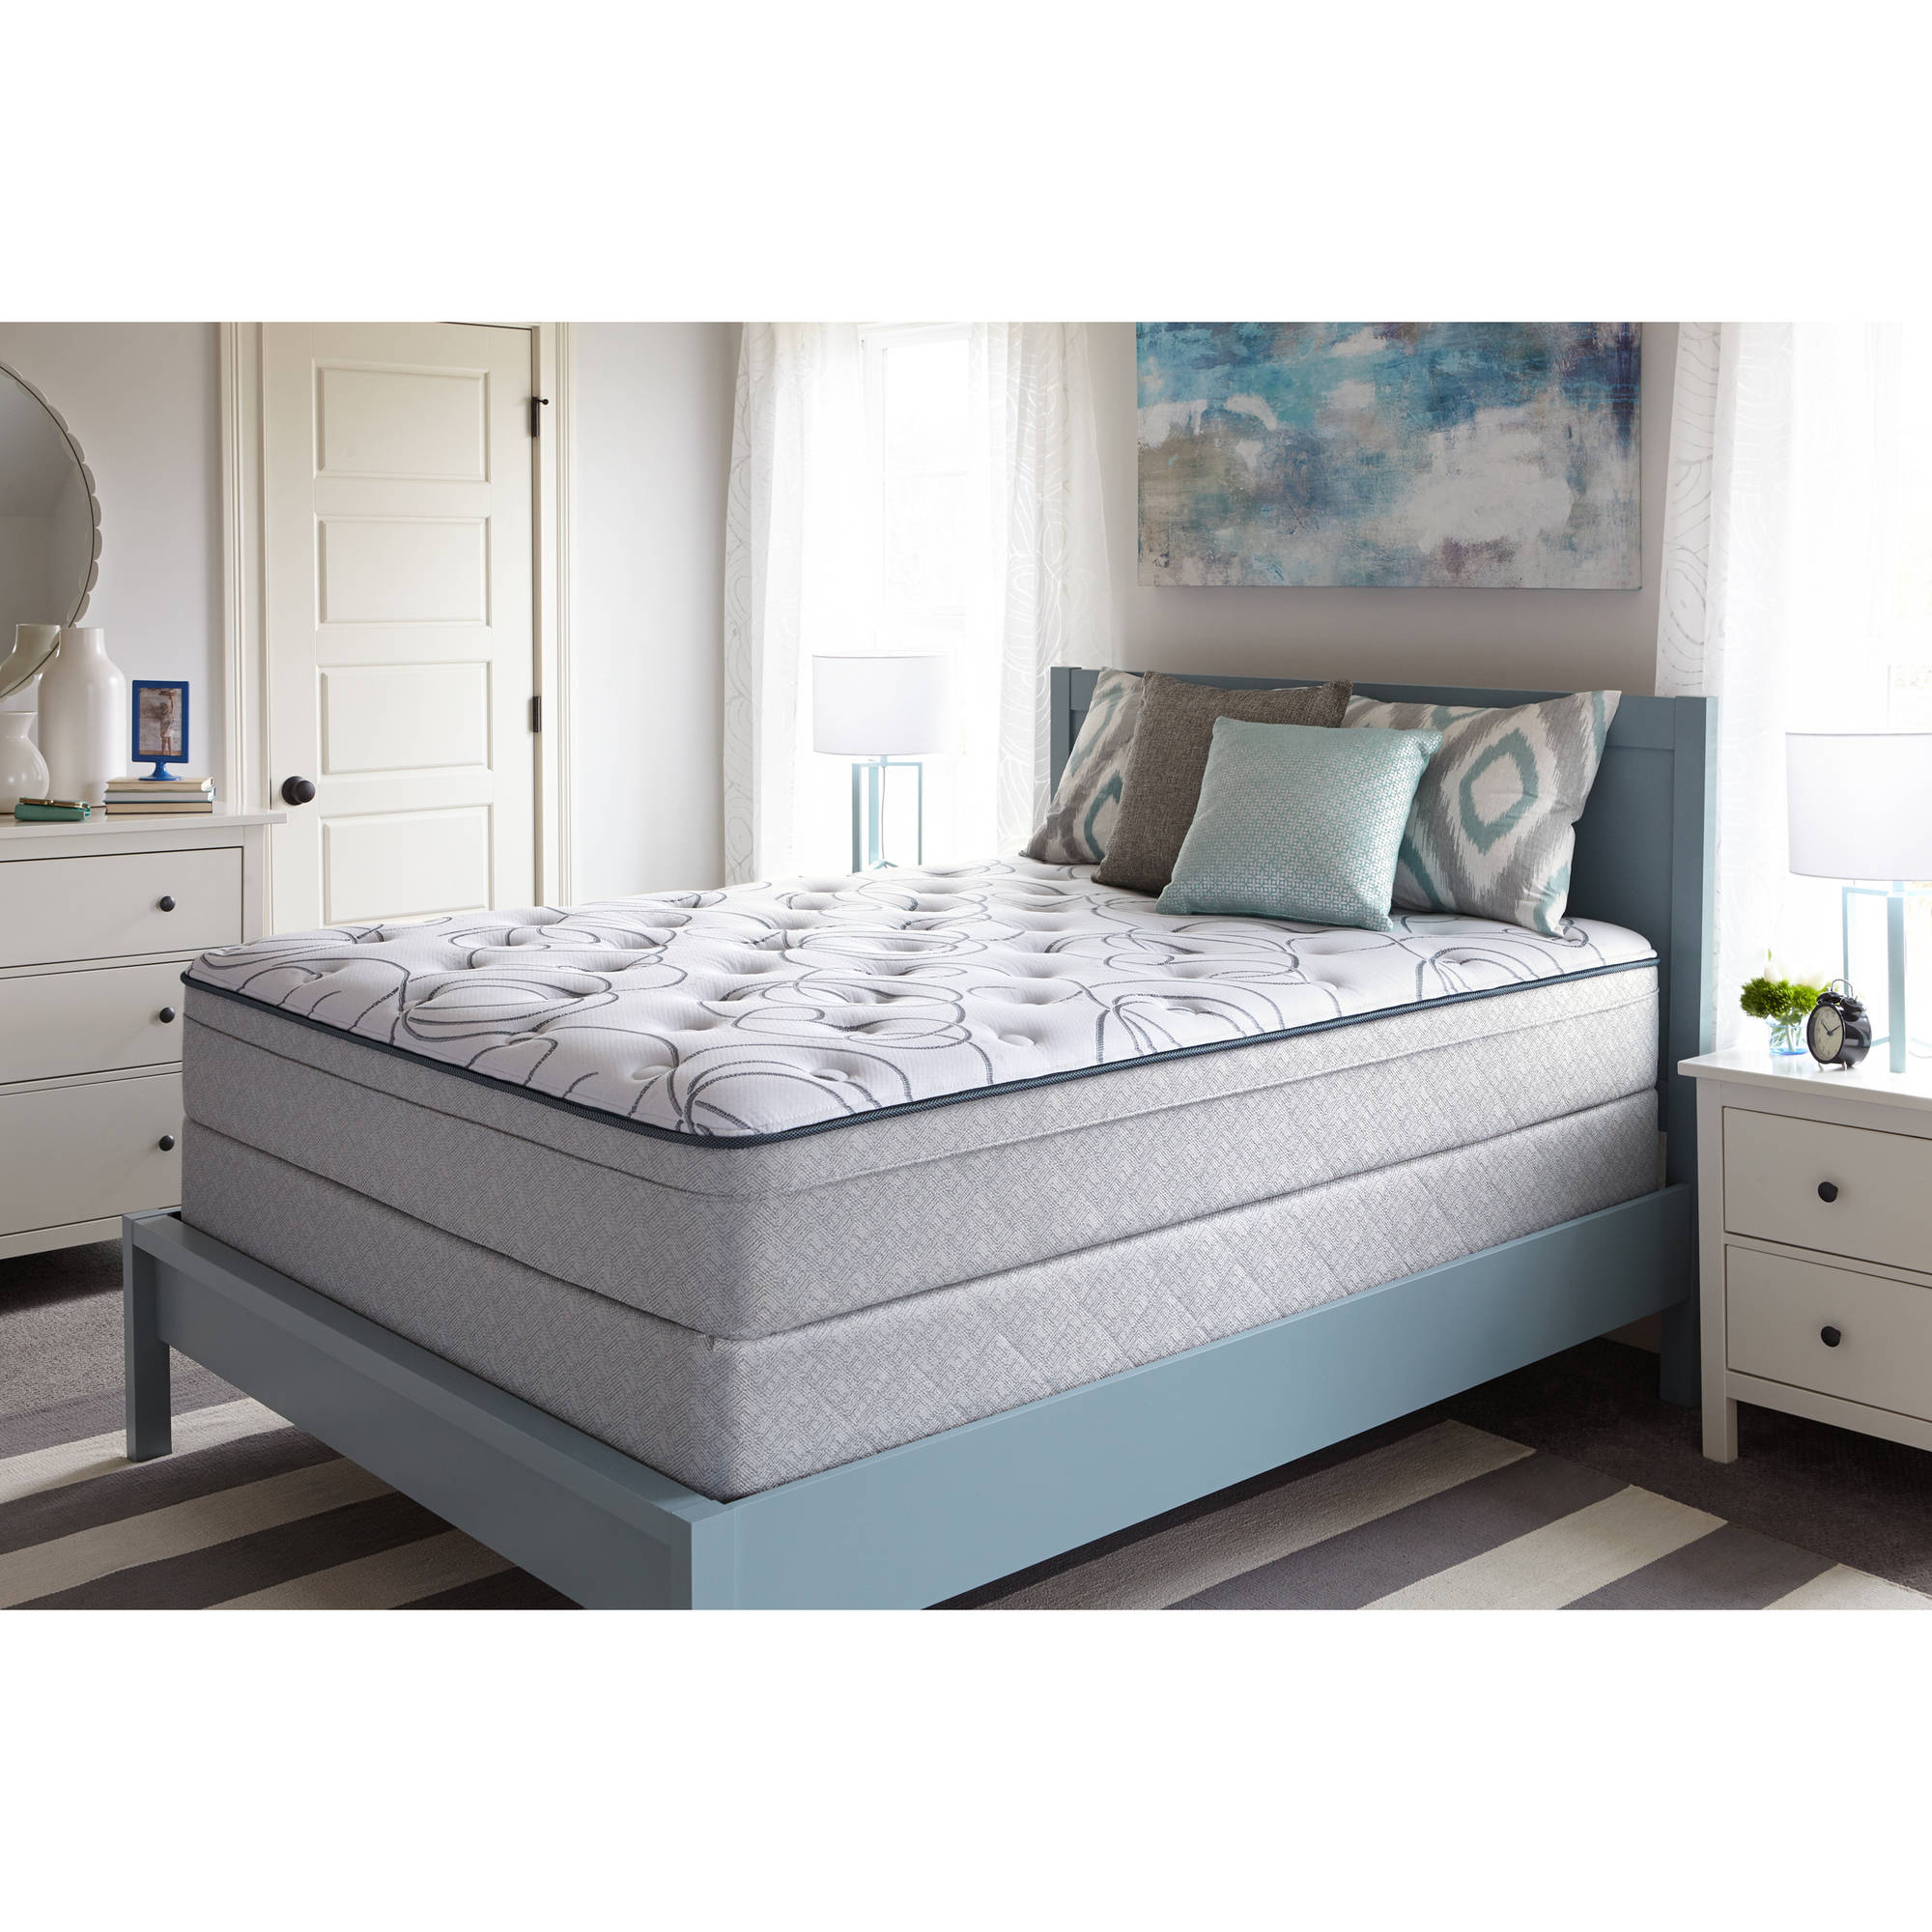 mattress on shop sale foam spring and bed sets